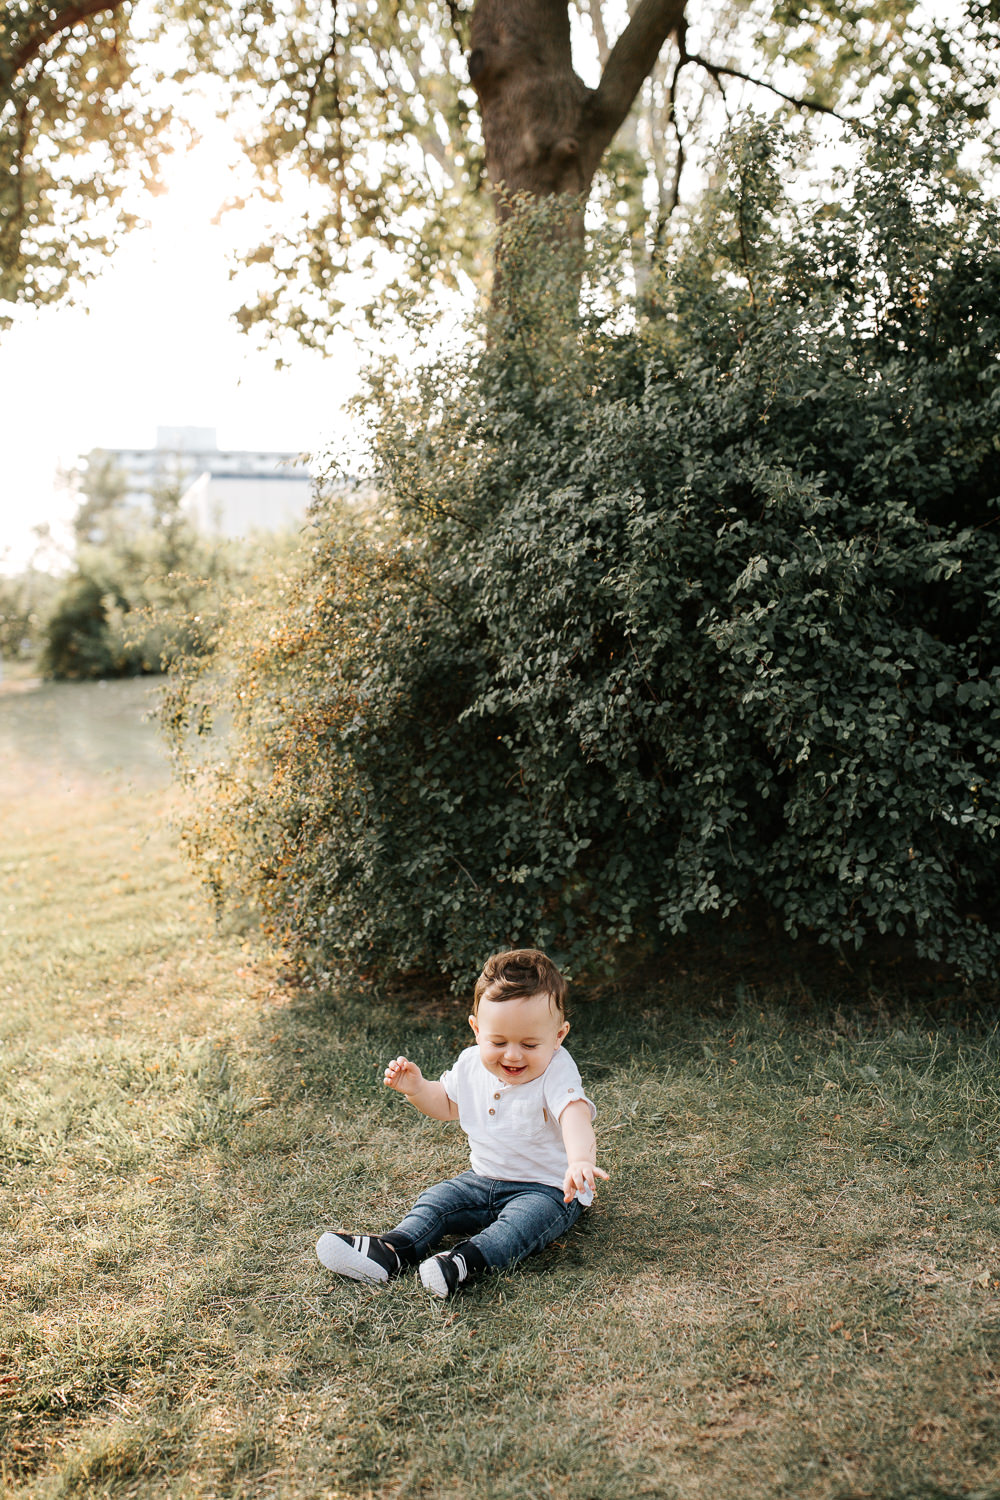 9 month old baby boy with dark hair in white t shirt, jeans and sneakers sitting on grass in park in front of greenery playing and smiling -  Markham Lifestyle Photos